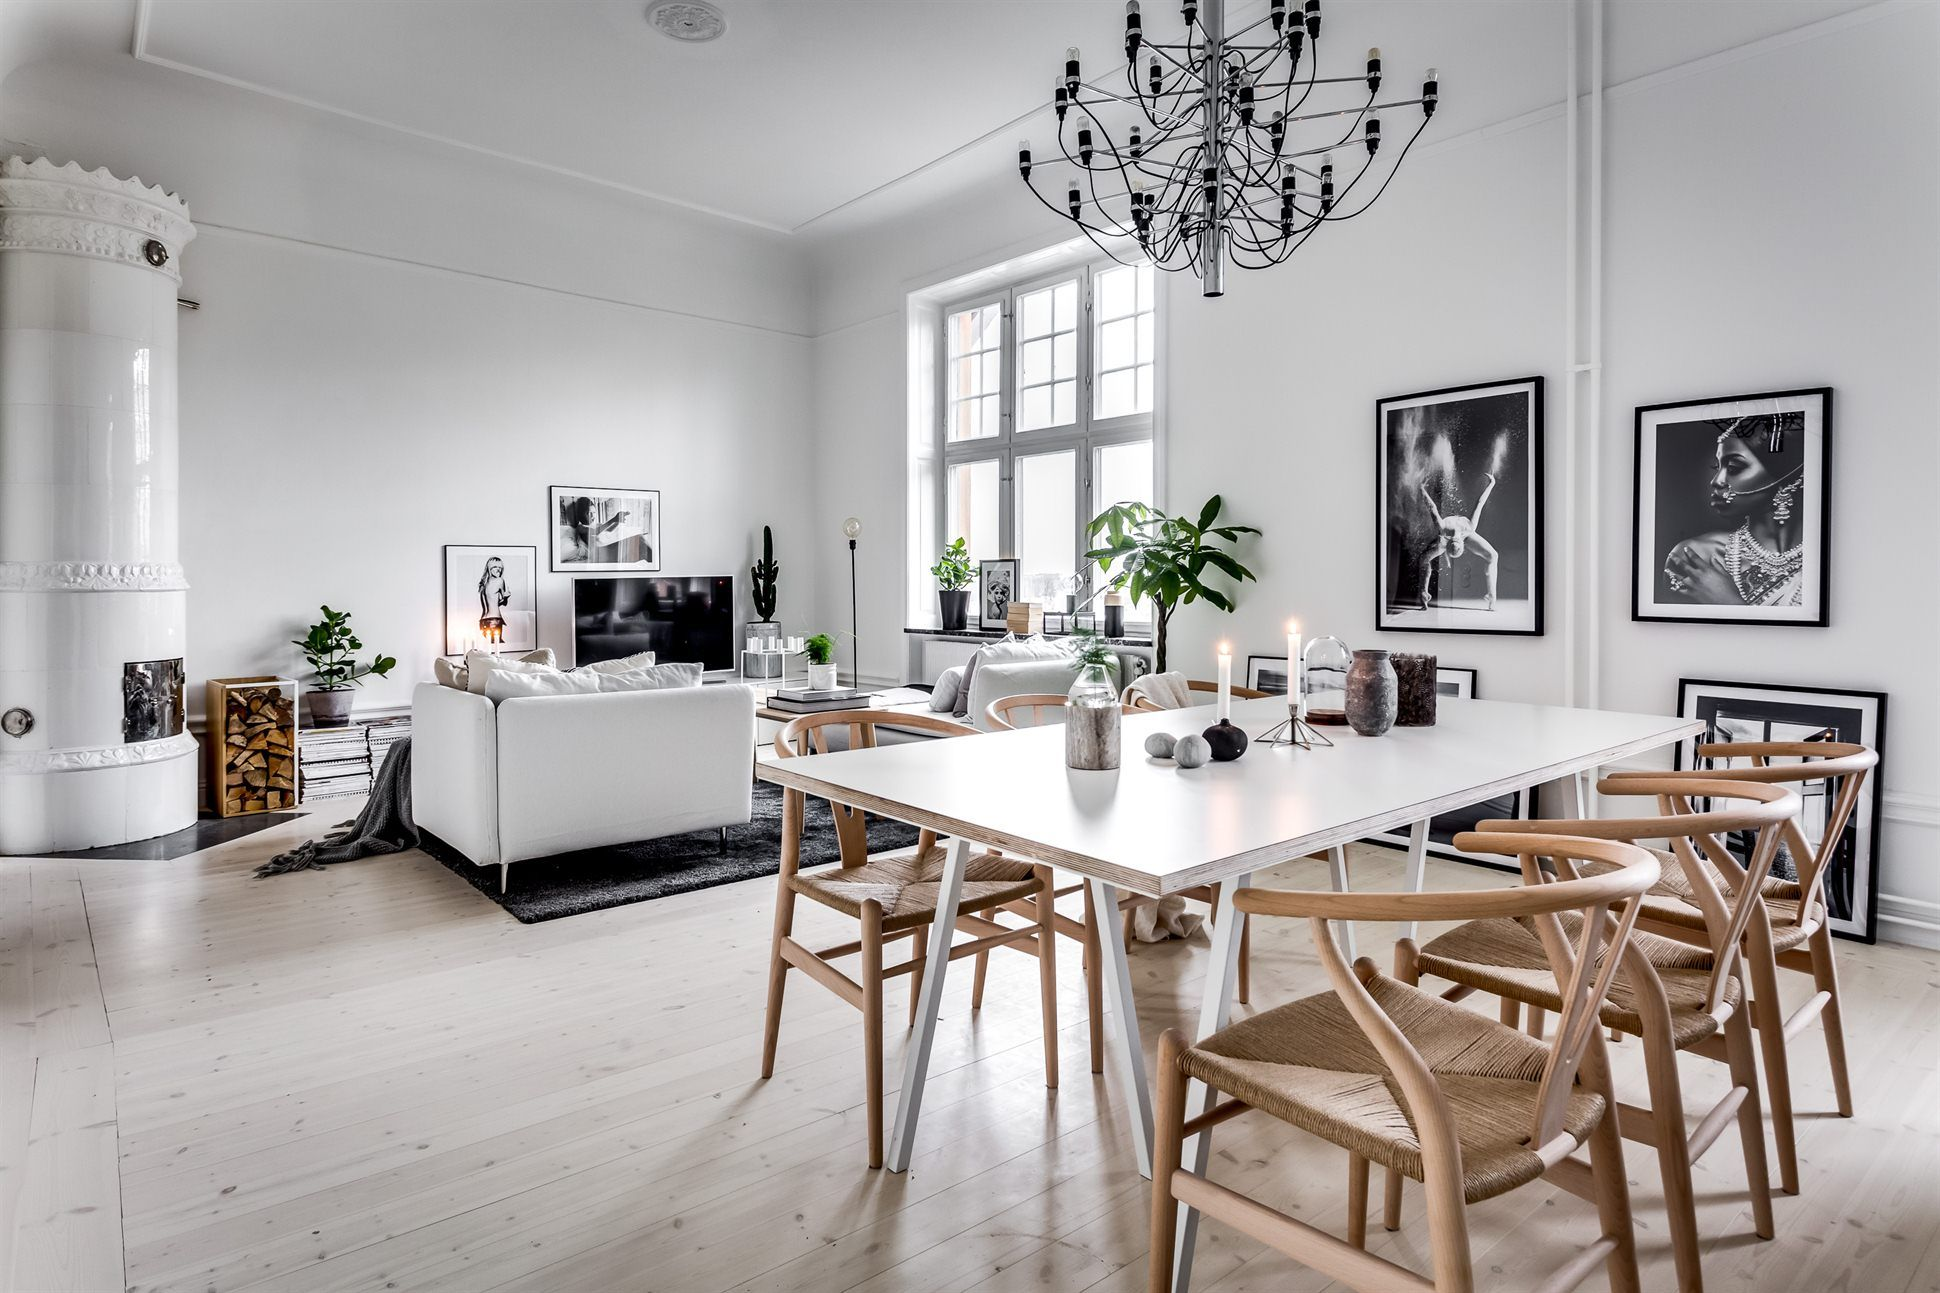 Keukenontwerp in huis design tips from the scrivano house